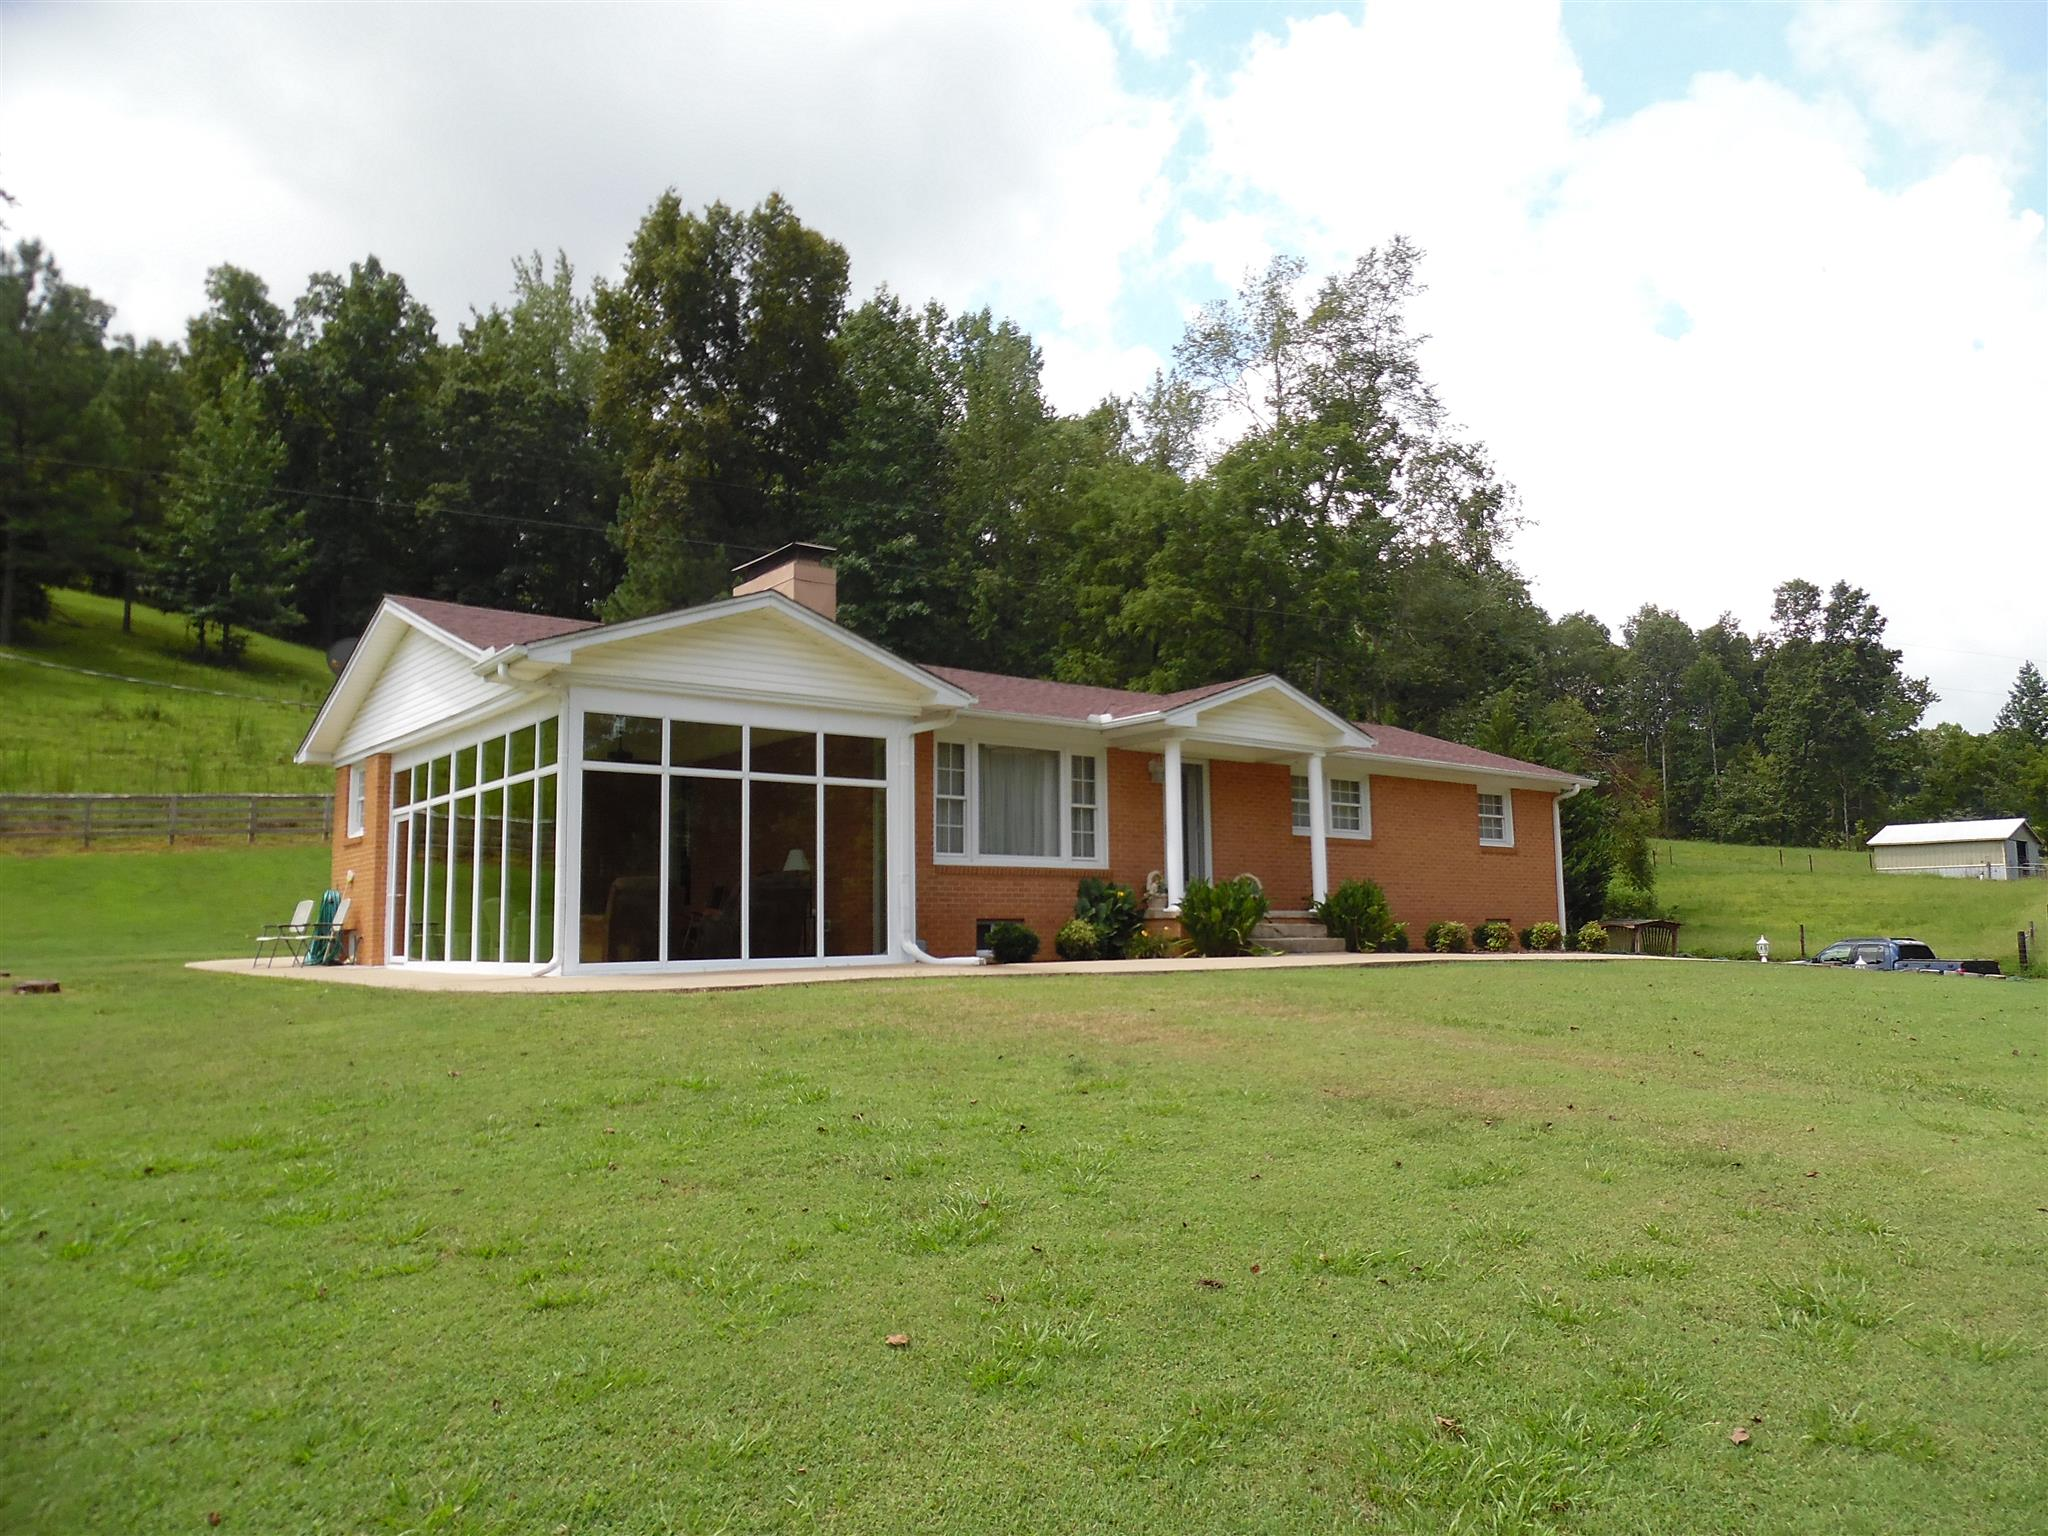 8244 Suckstem Branch Rd, Lawrenceburg, TN 38464 - Lawrenceburg, TN real estate listing